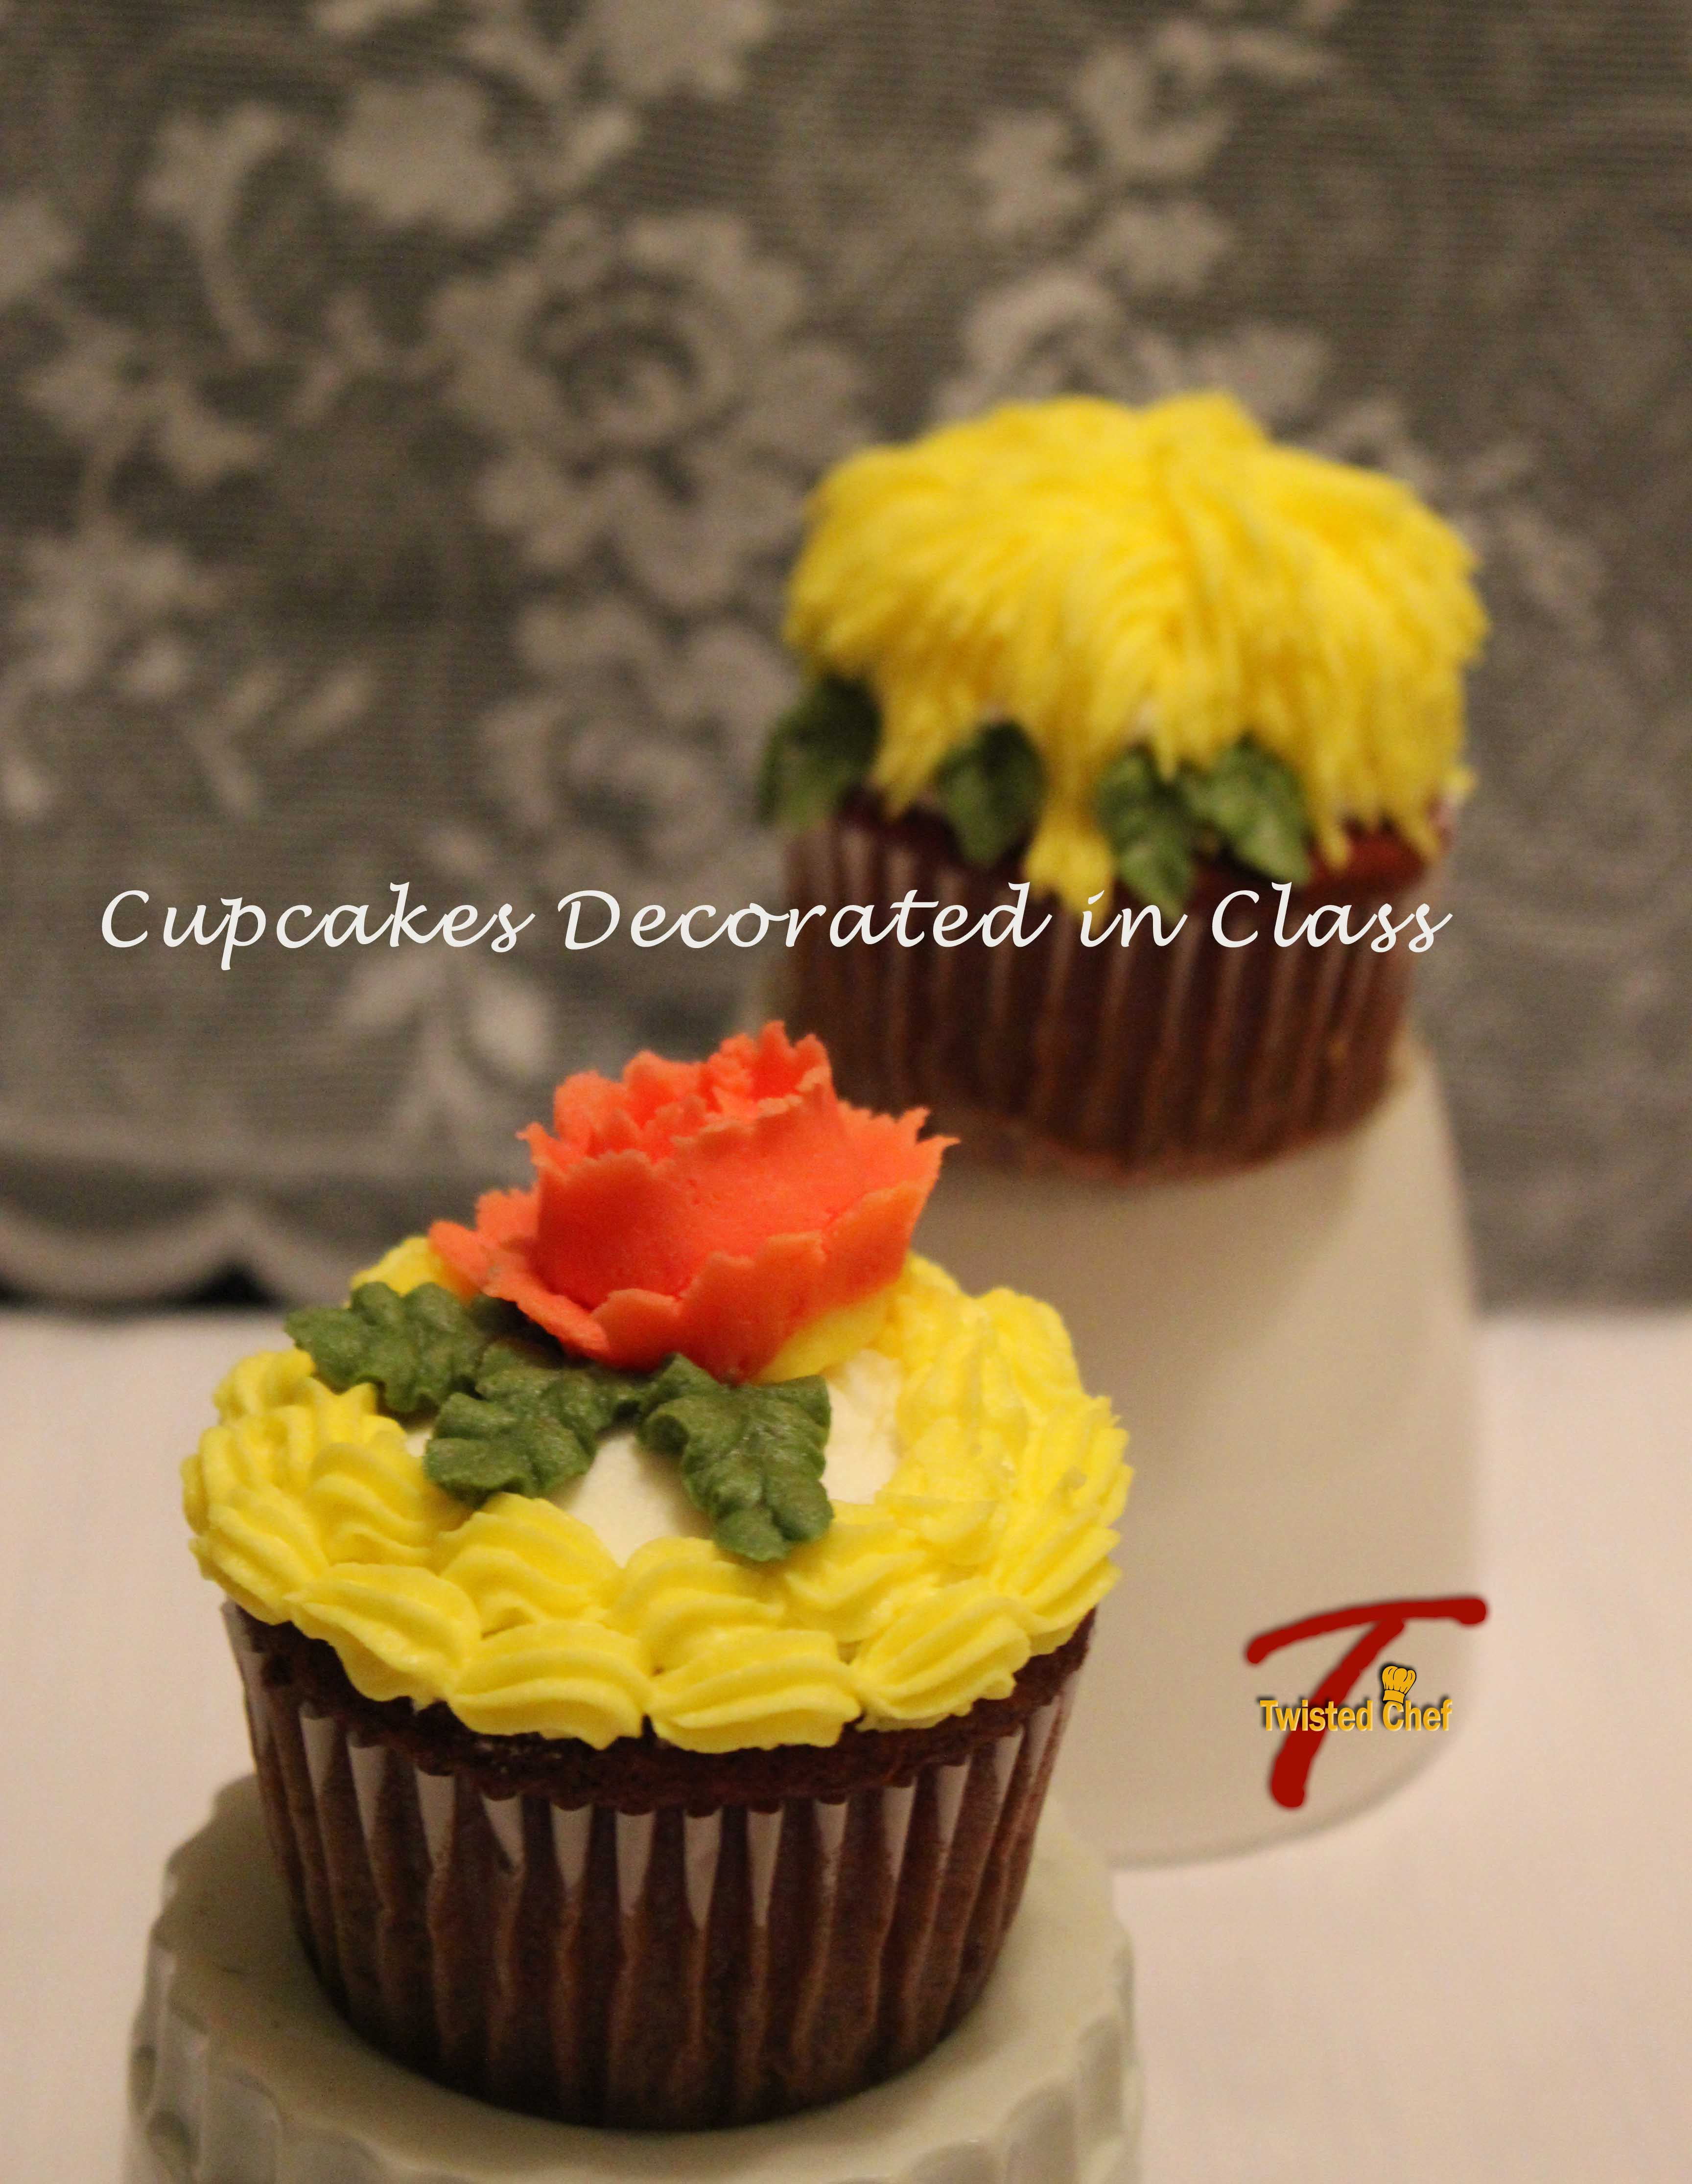 Great We Decorated 6 Cupcakes. These Are Samples Of What I Did With My Cupcakes.